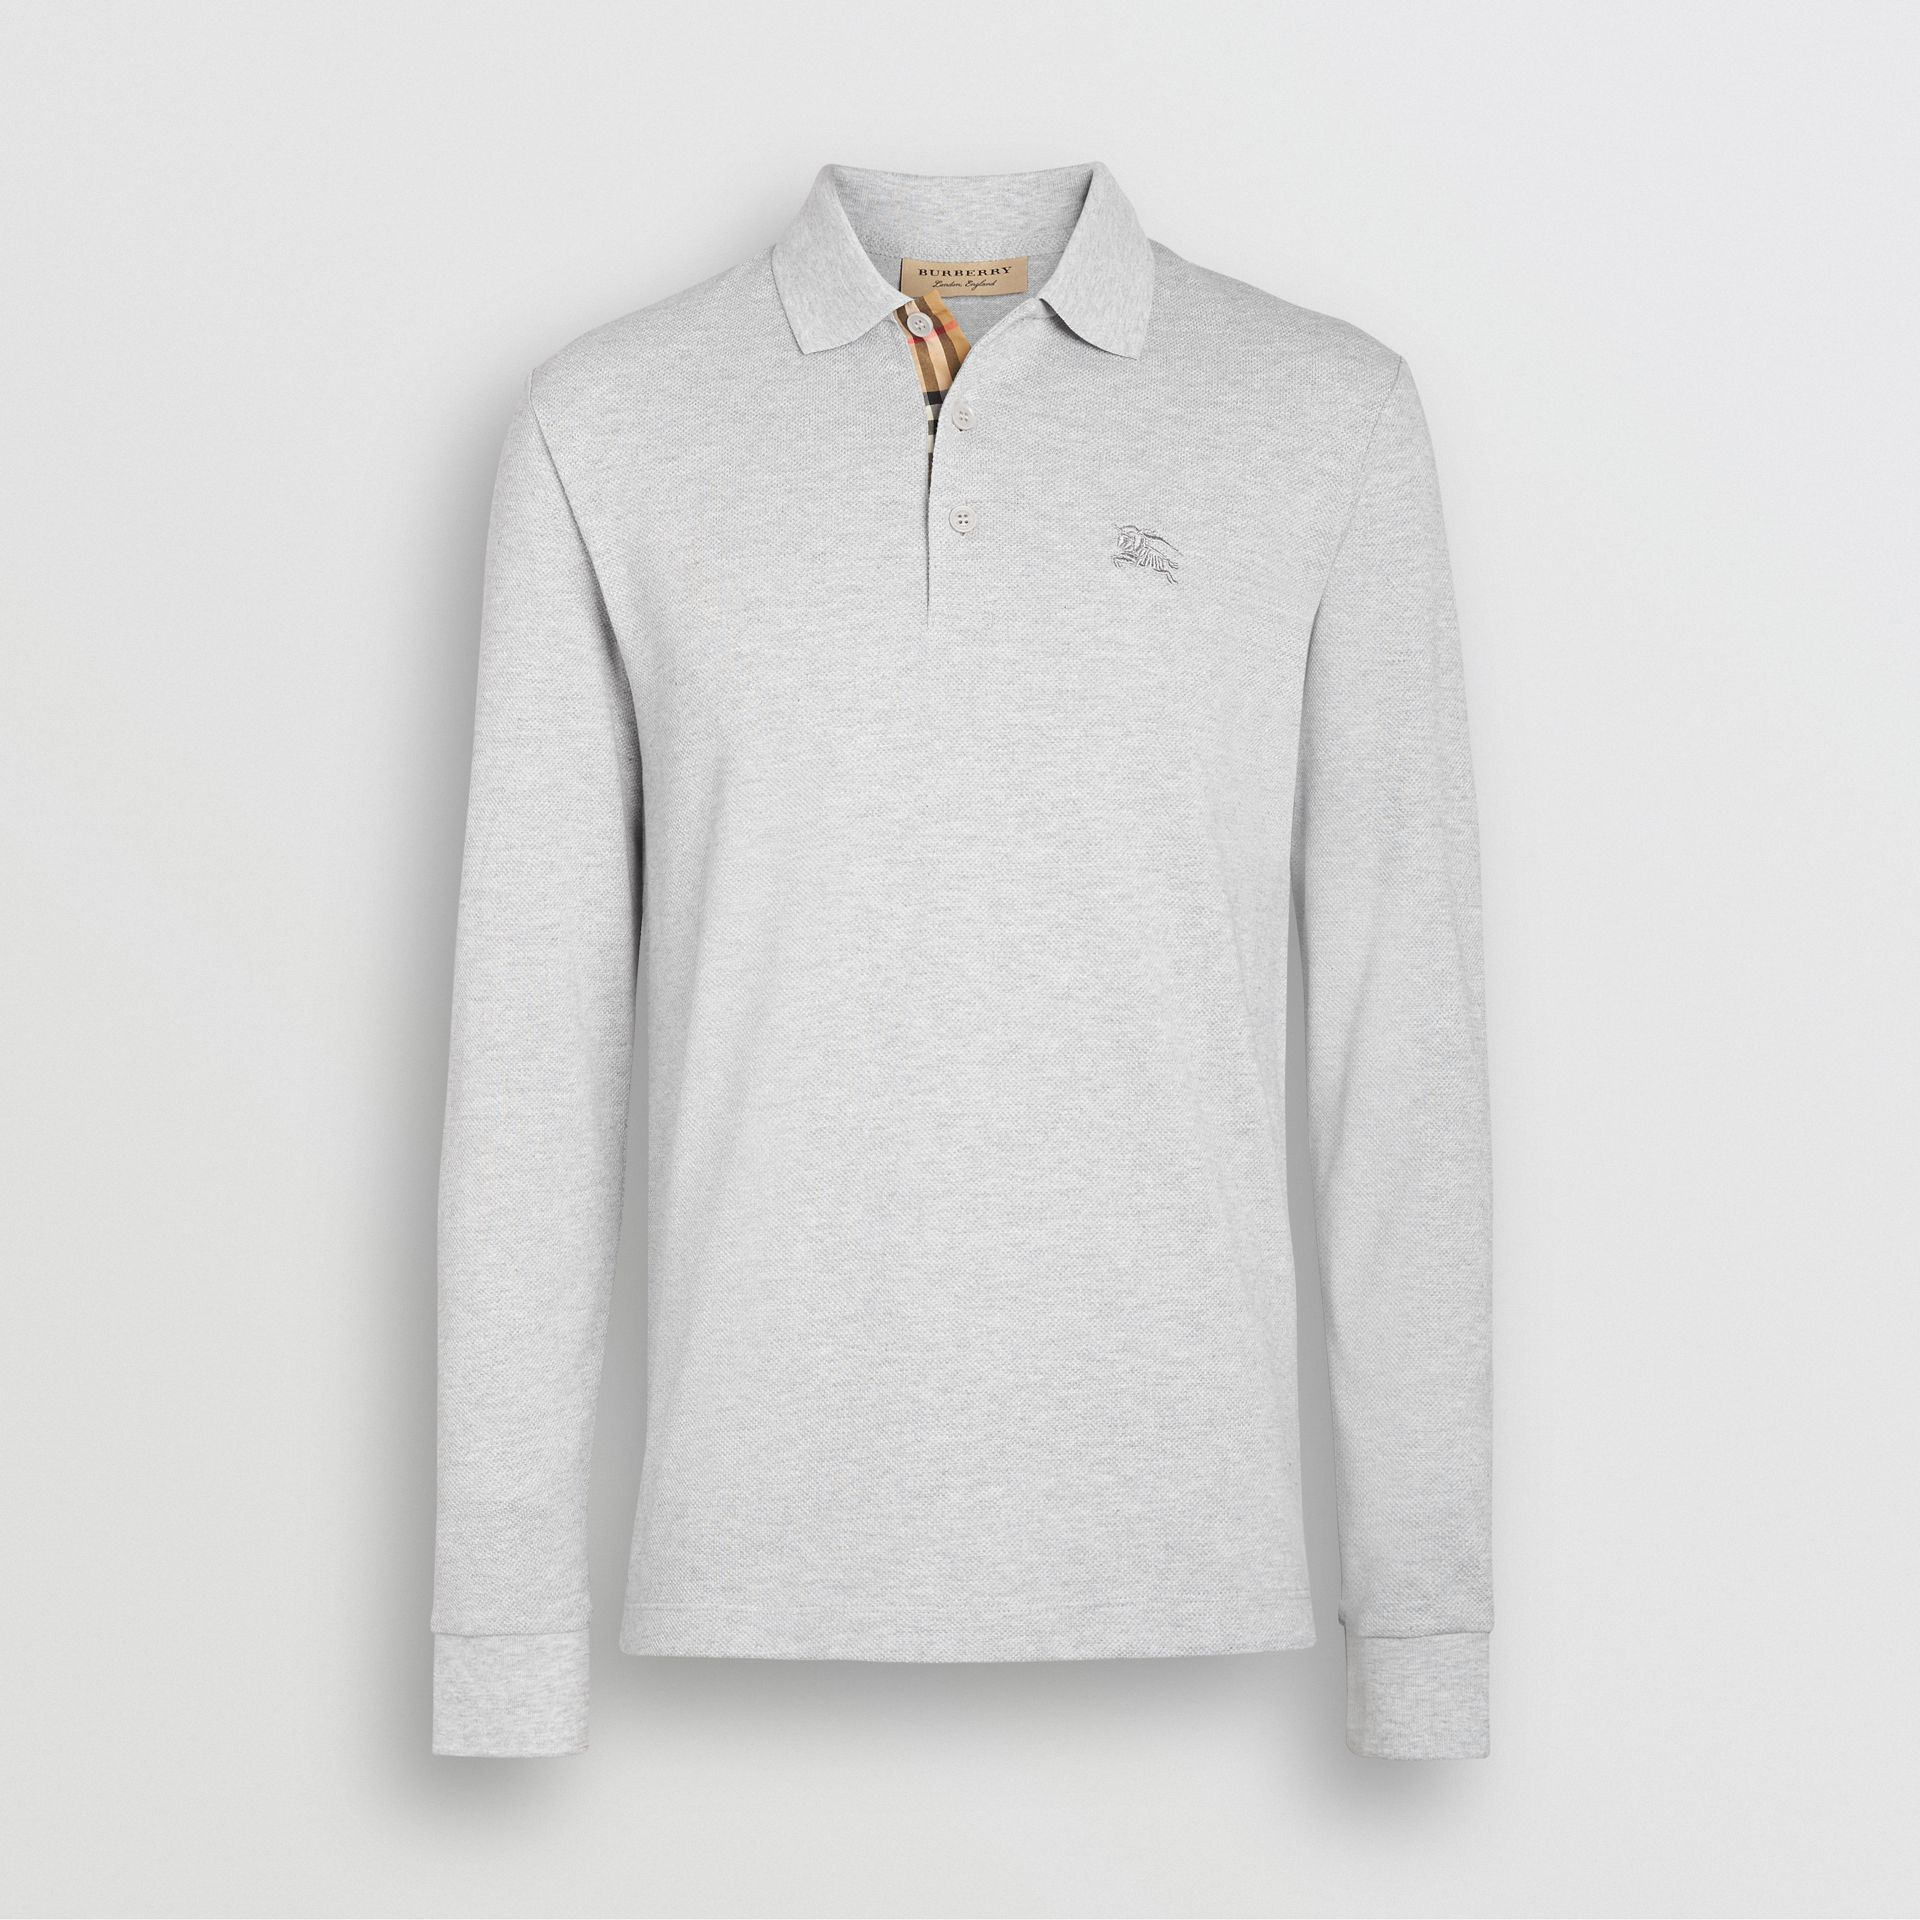 Long-sleeve Cotton Piqué Polo Shirt in Pale Grey Melange - Men | Burberry United Kingdom - gallery image 3